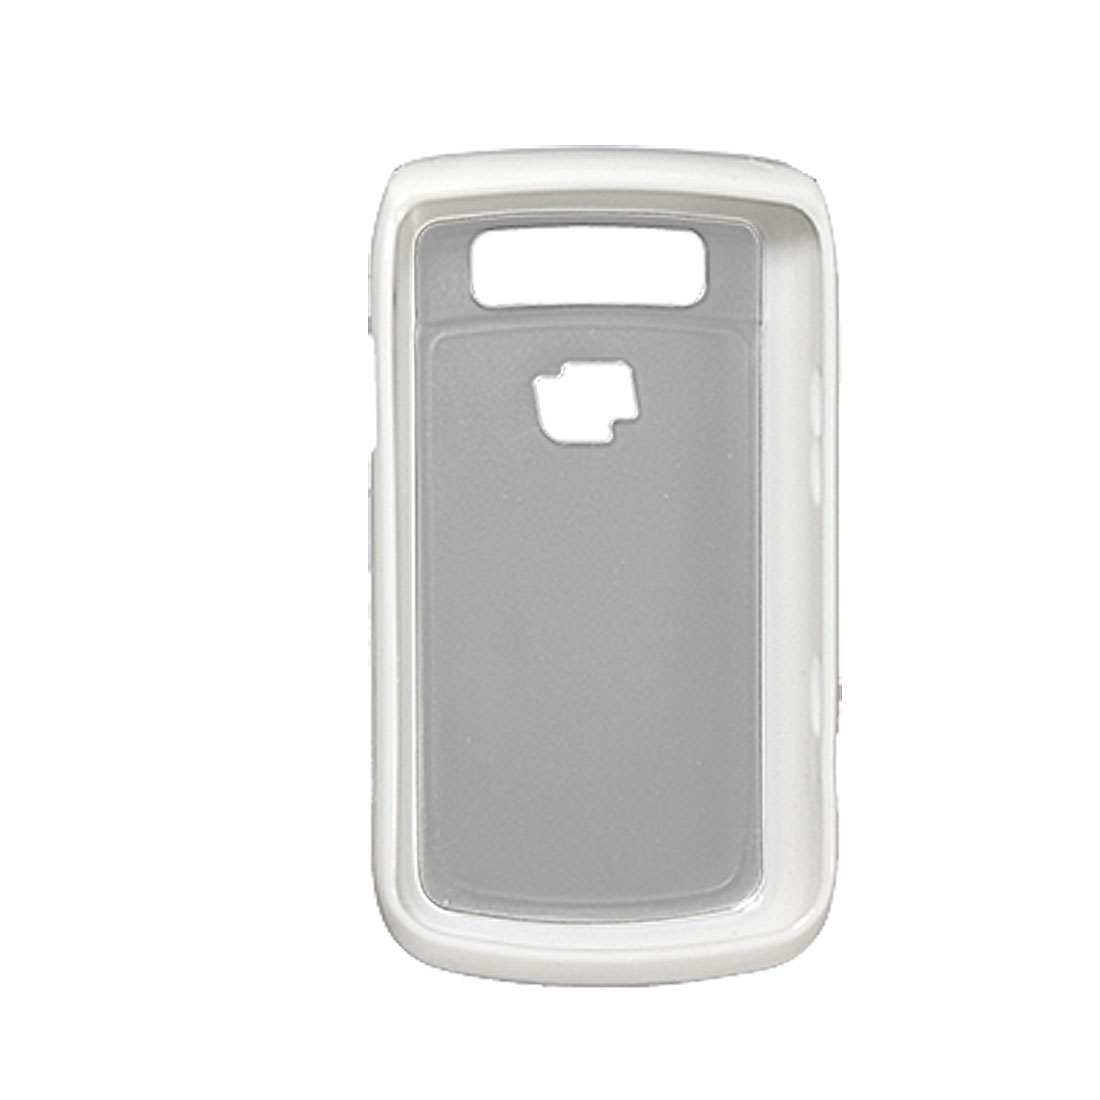 White Clear Plastic Back Case Shell for BlackBerry 9700